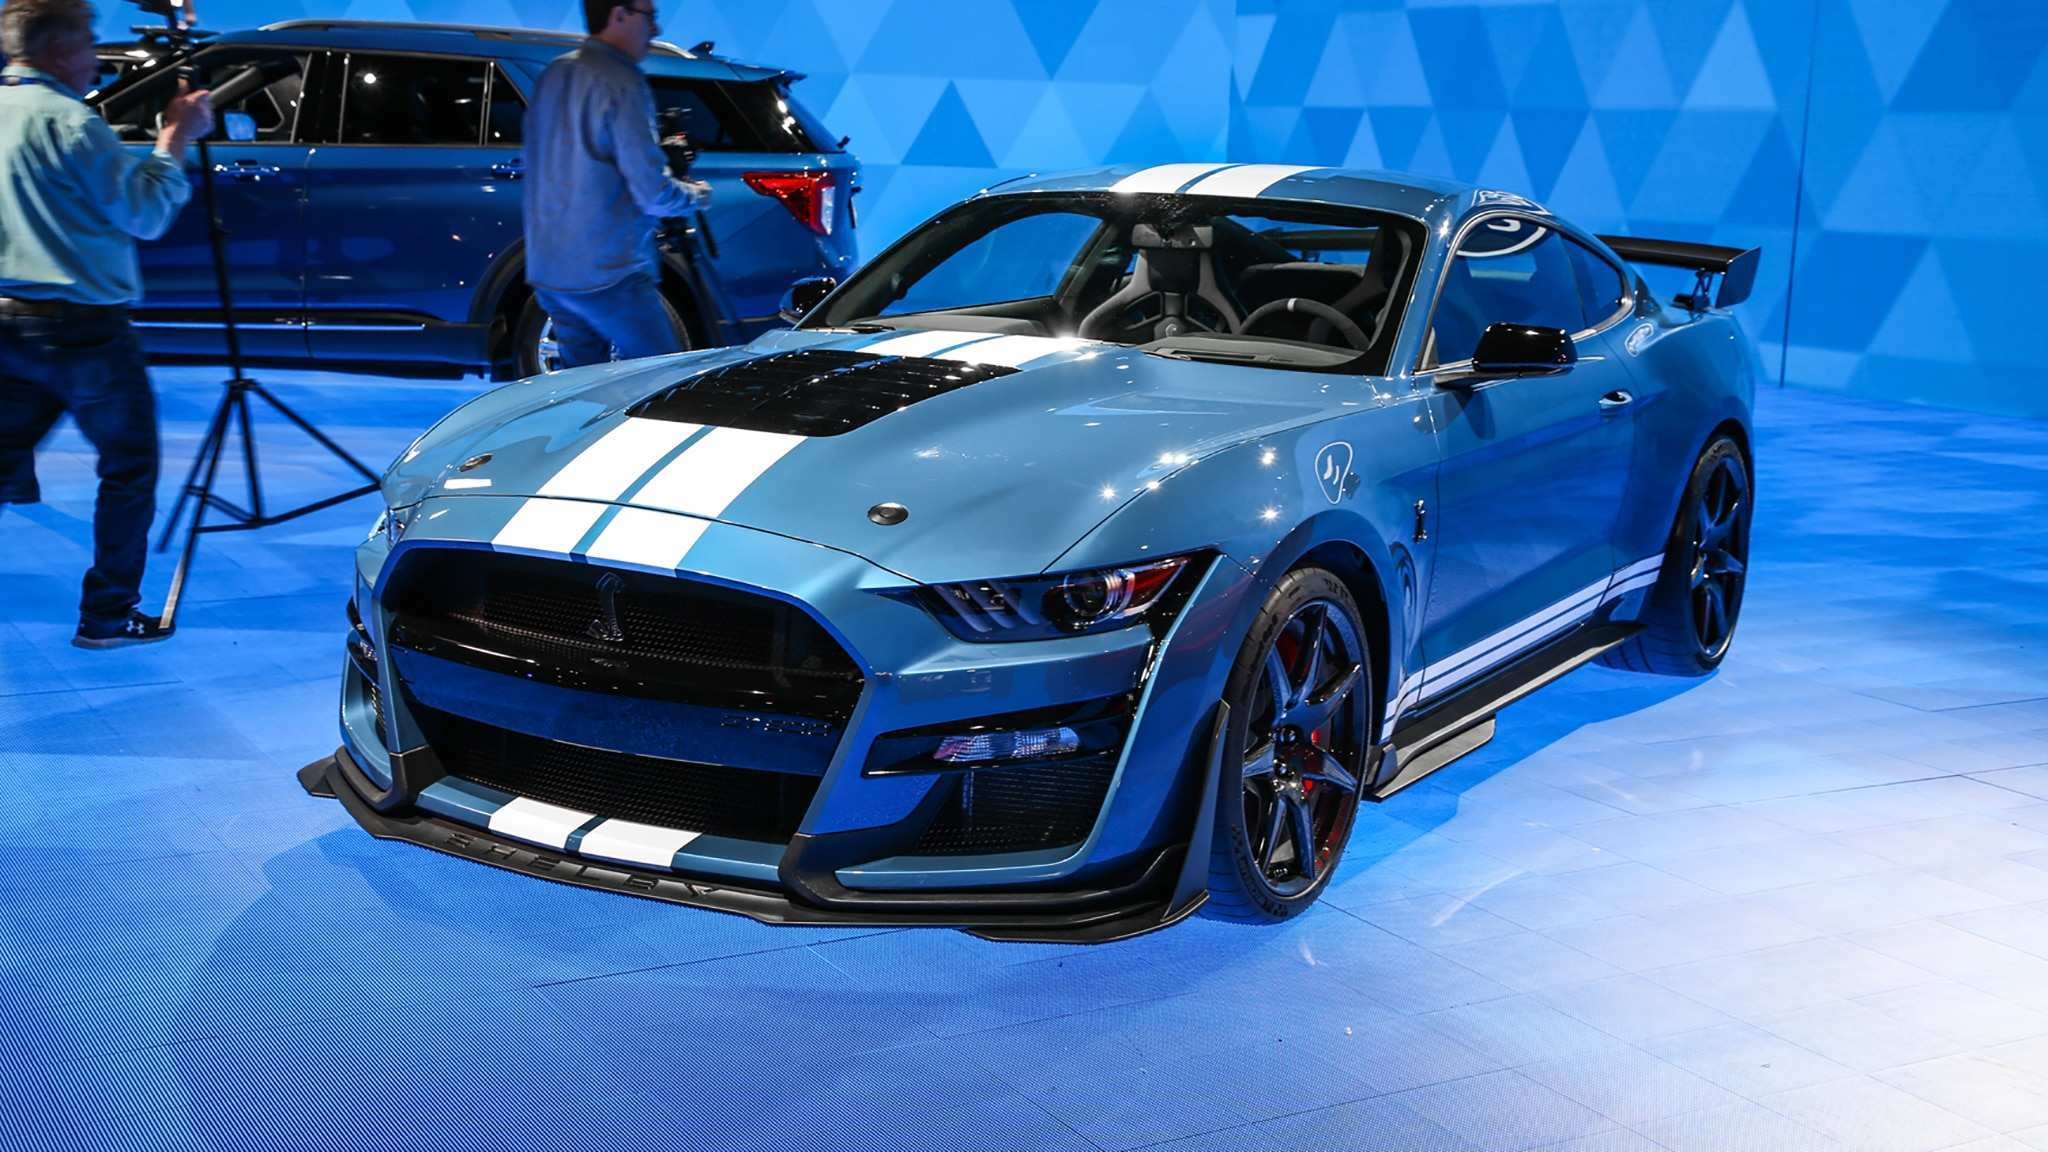 90 New 2020 Ford Shelby Gt500 Price First Drive